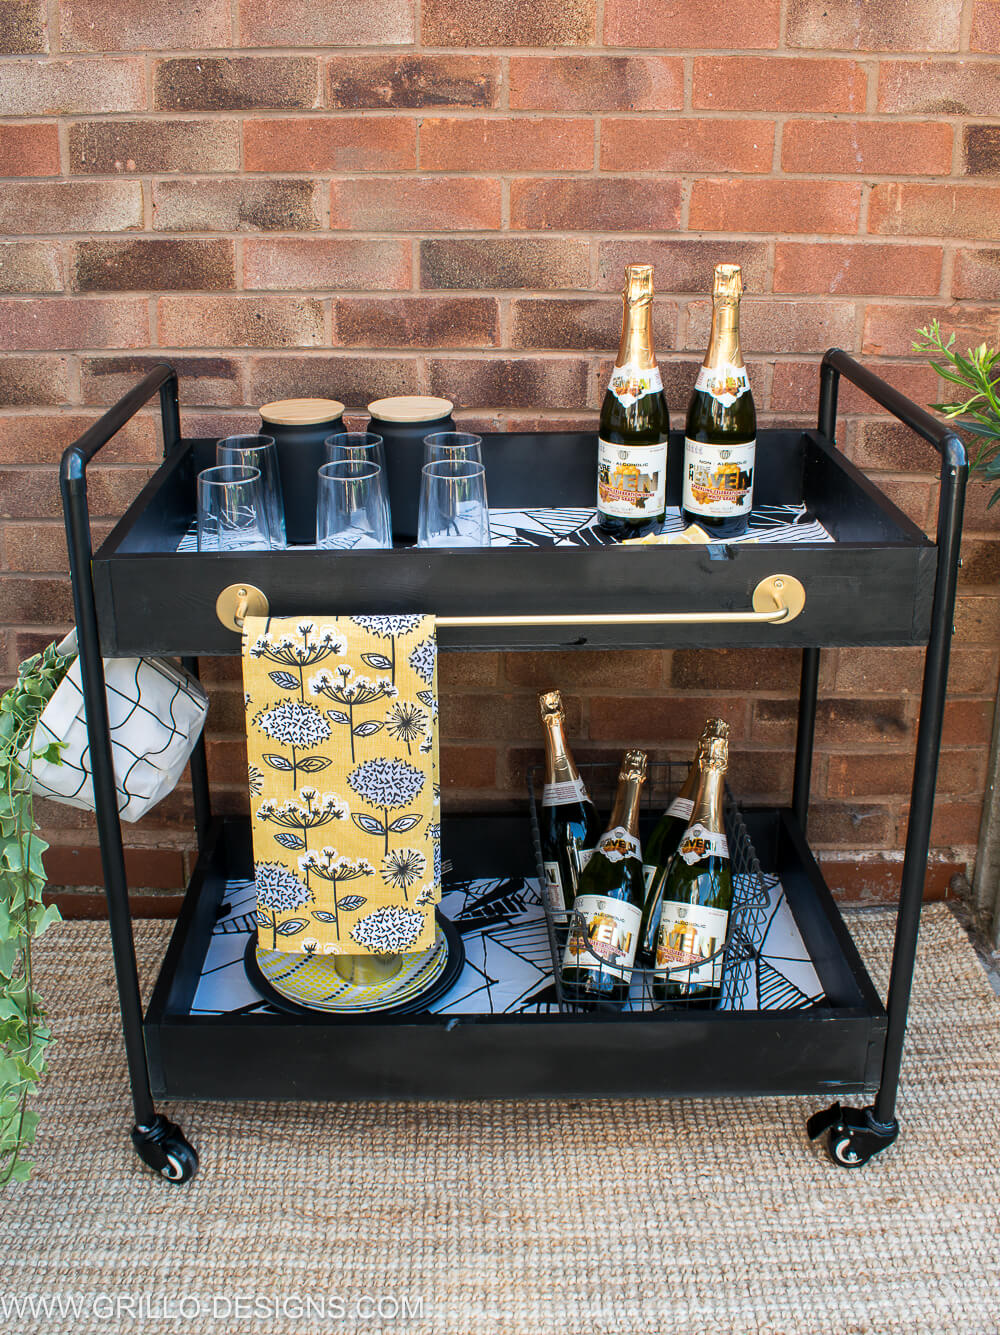 Diy outdoors rolling bar cart / grillo designs